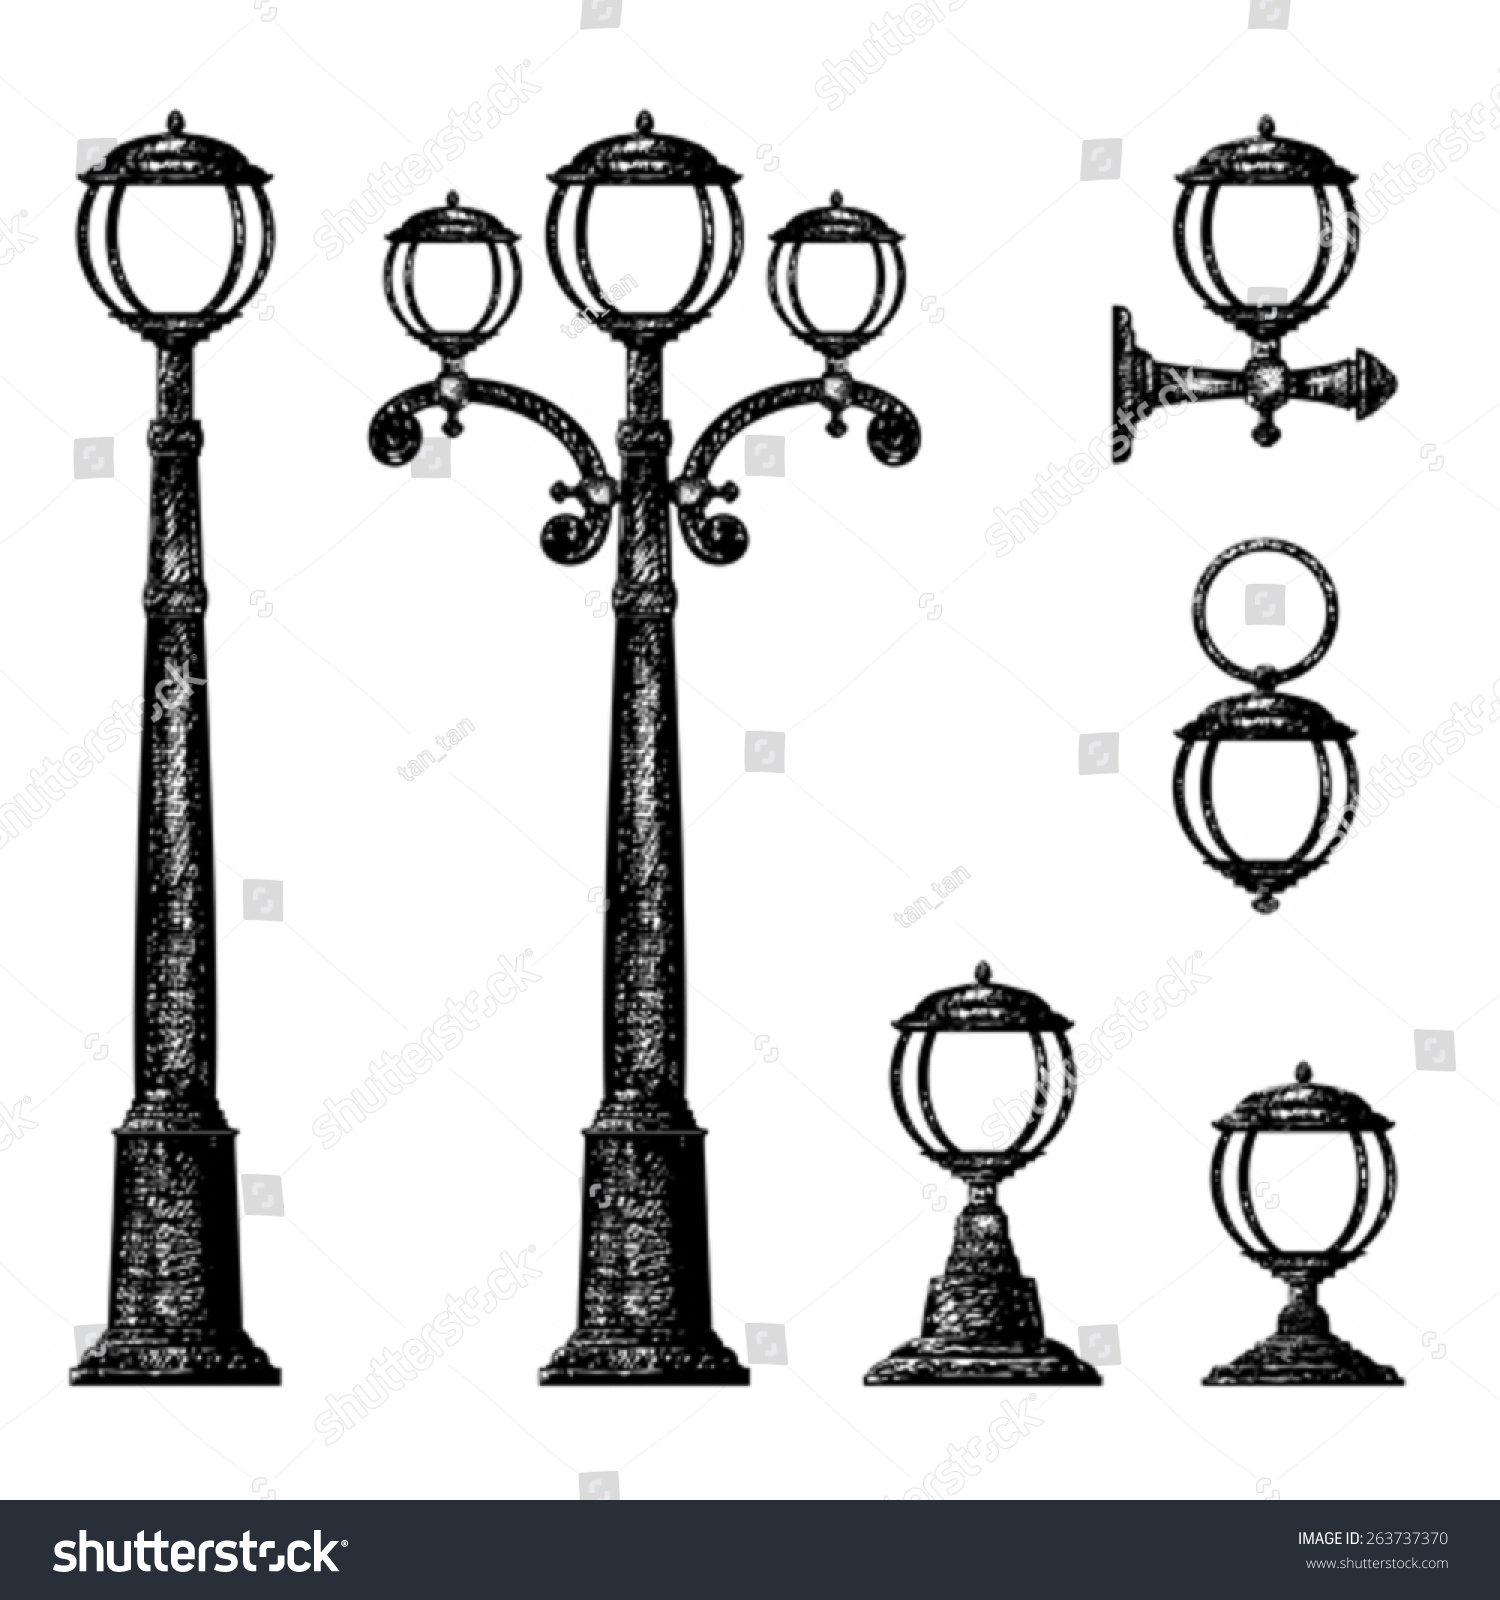 Royalty-free Sketch of street light, vector drawing #263737370 ... for Street Light Drawing  568zmd